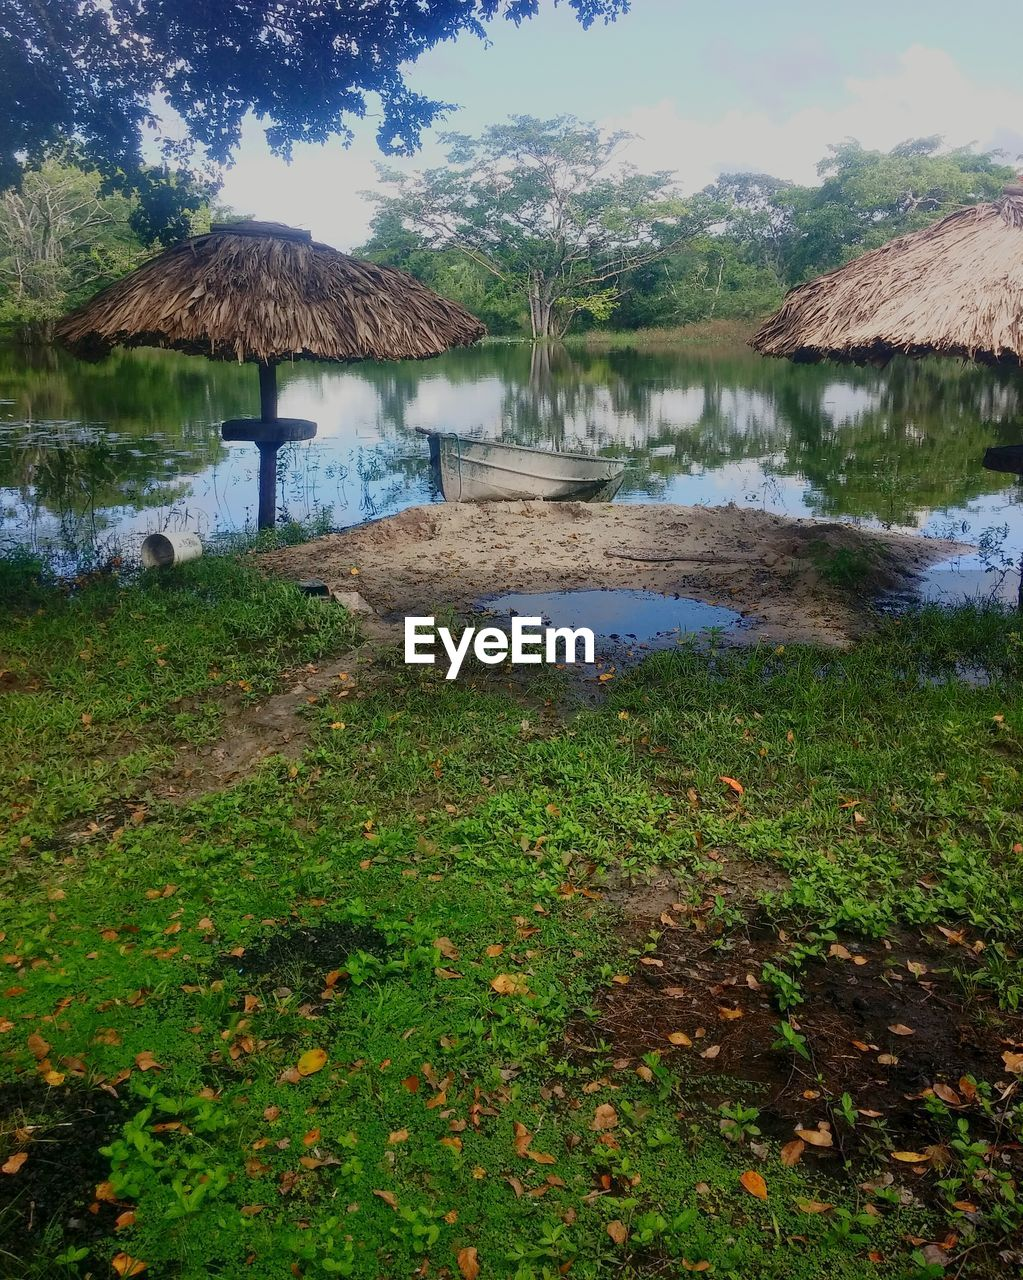 water, nature, thatched roof, outdoors, grass, beauty in nature, lake, tranquility, no people, scenics, day, tree, sky